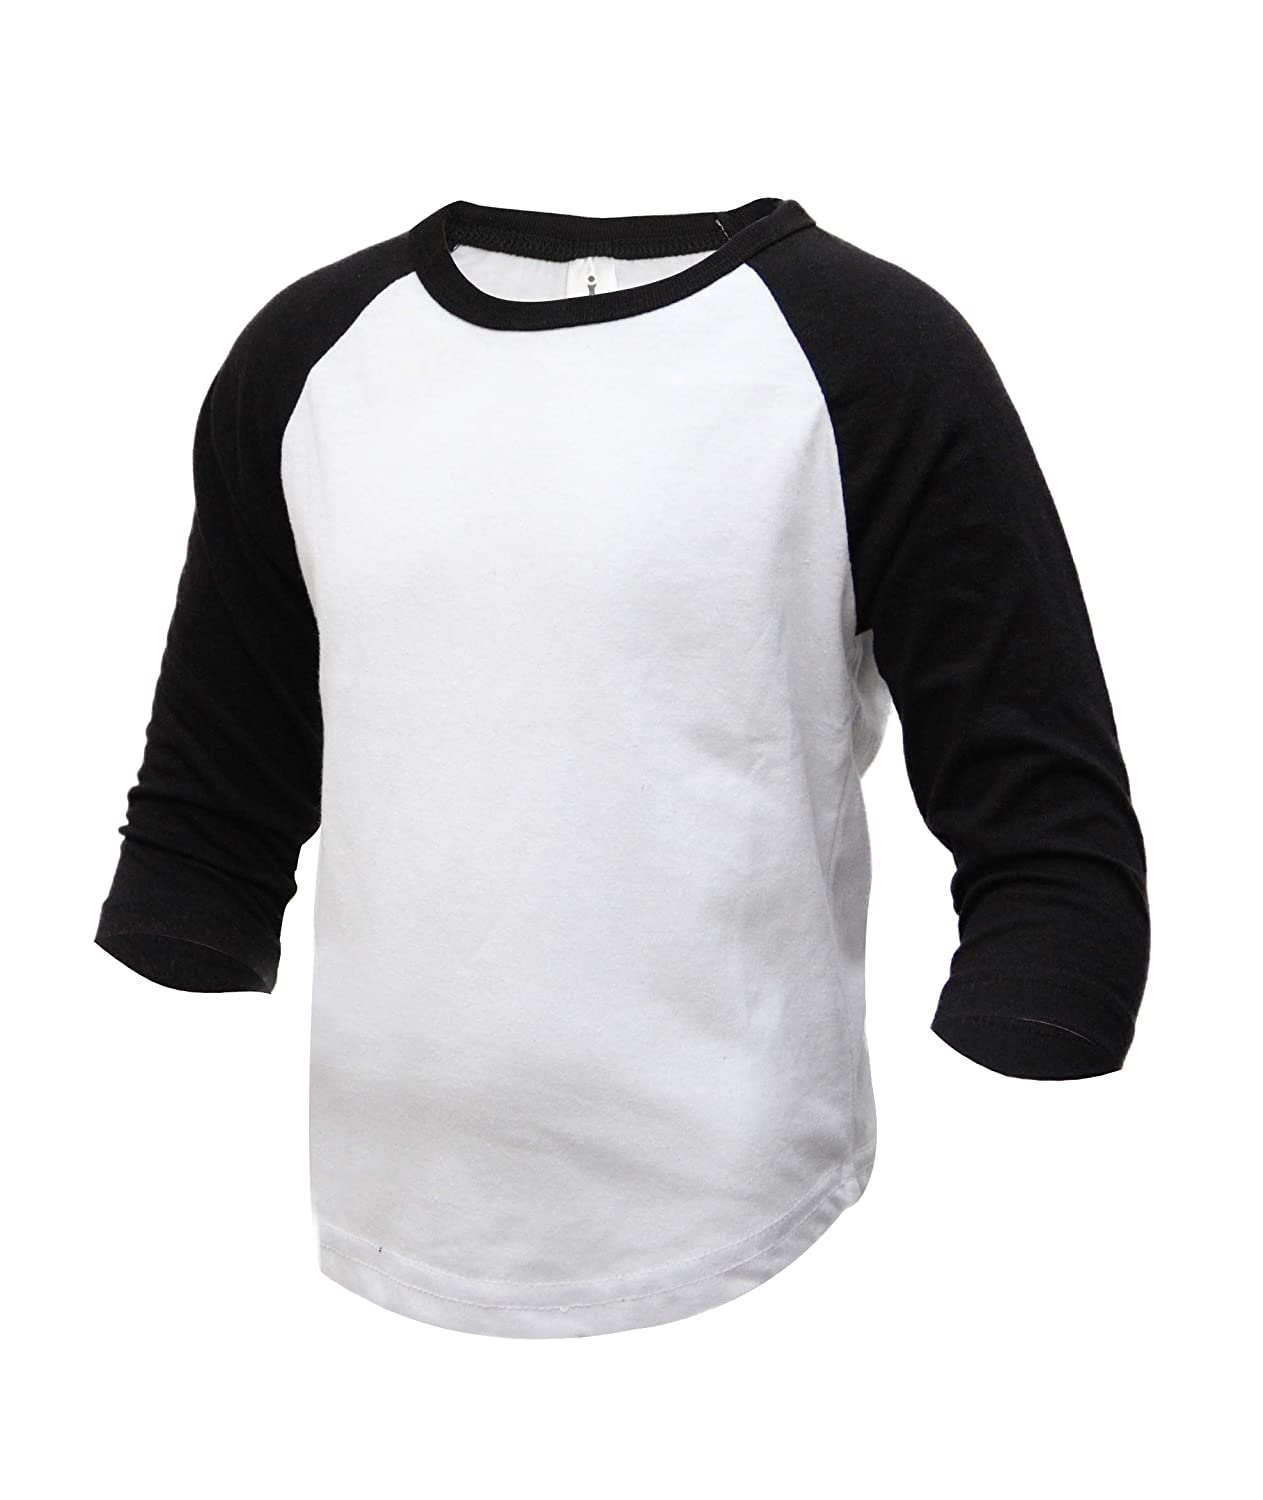 b573270ec9bb82 Amazon.com  Kids   Youth Baseball Raglan T-Shirt 3 4 Sleeve Infant Toddler  Youth Athletic Jersey Sports Casual (10+ Colors)  Clothing